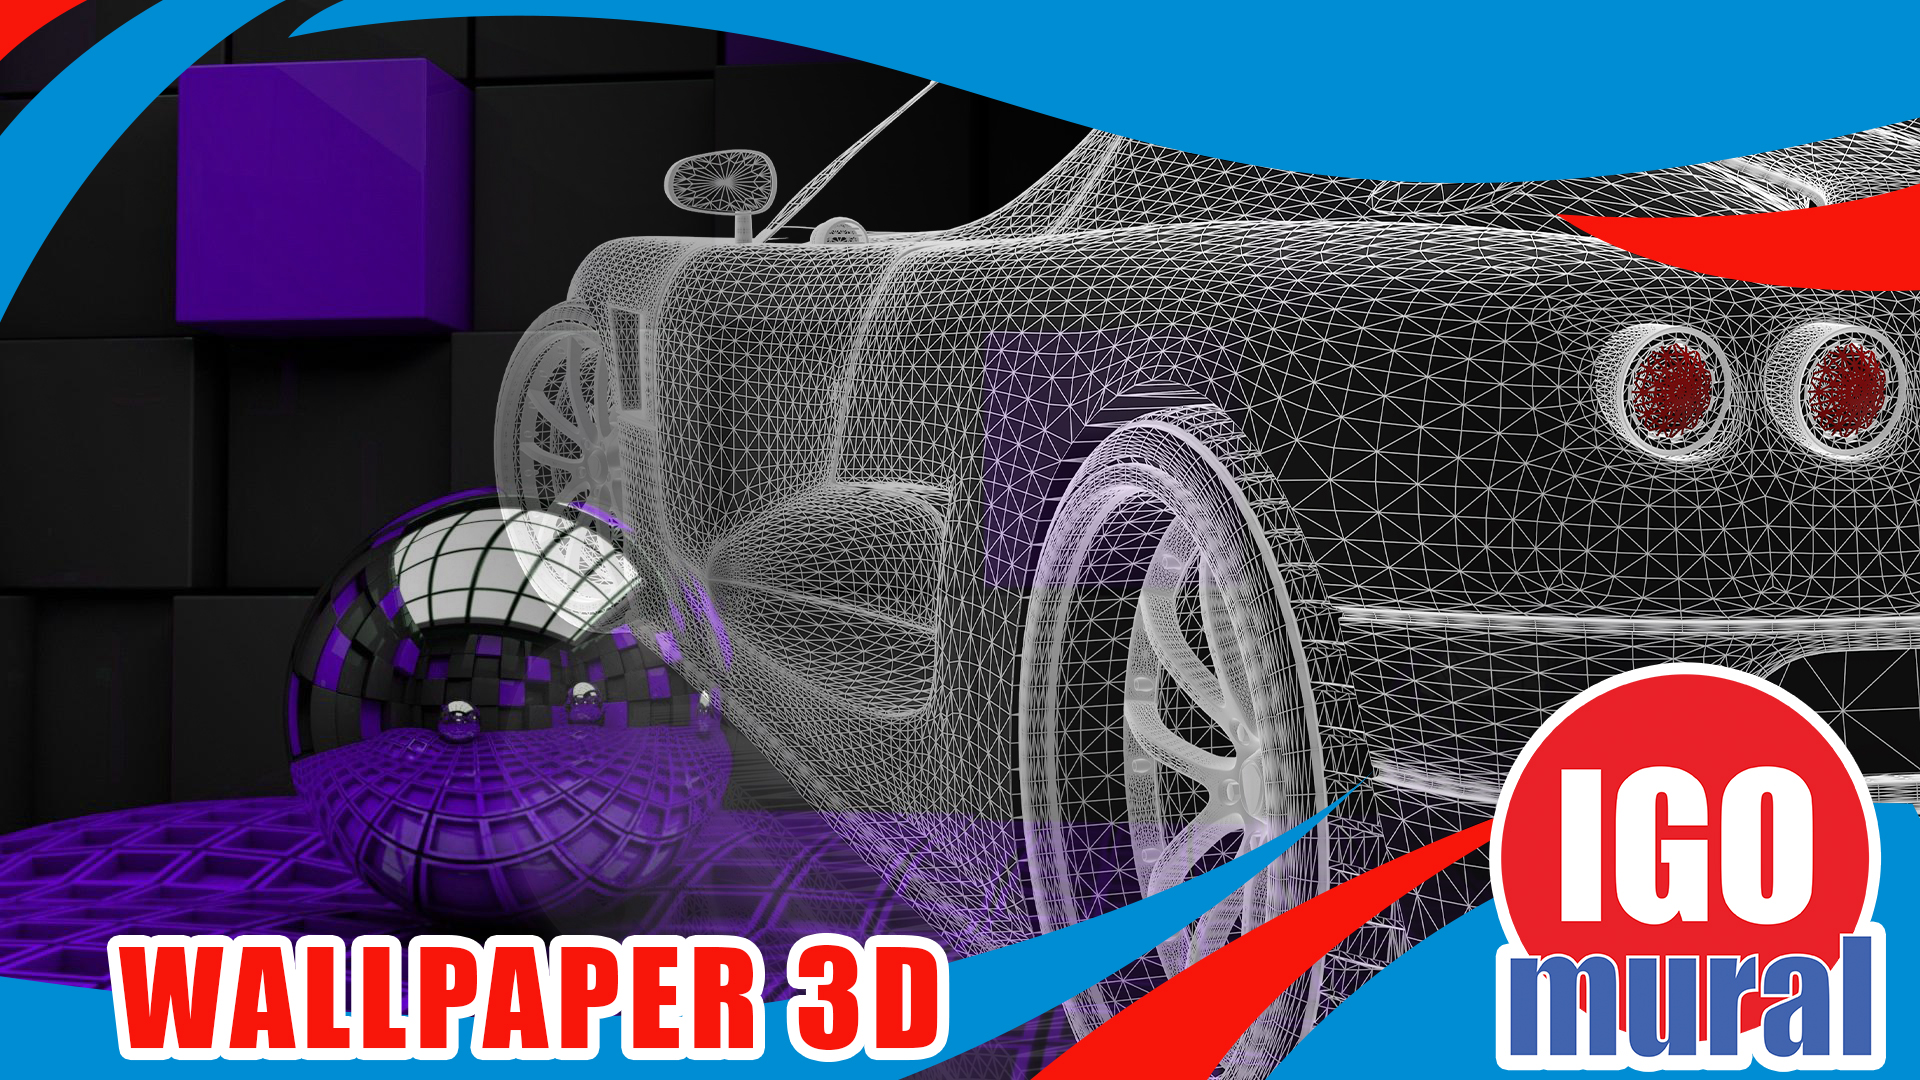 Gambar Wallpaper Dinding 3D